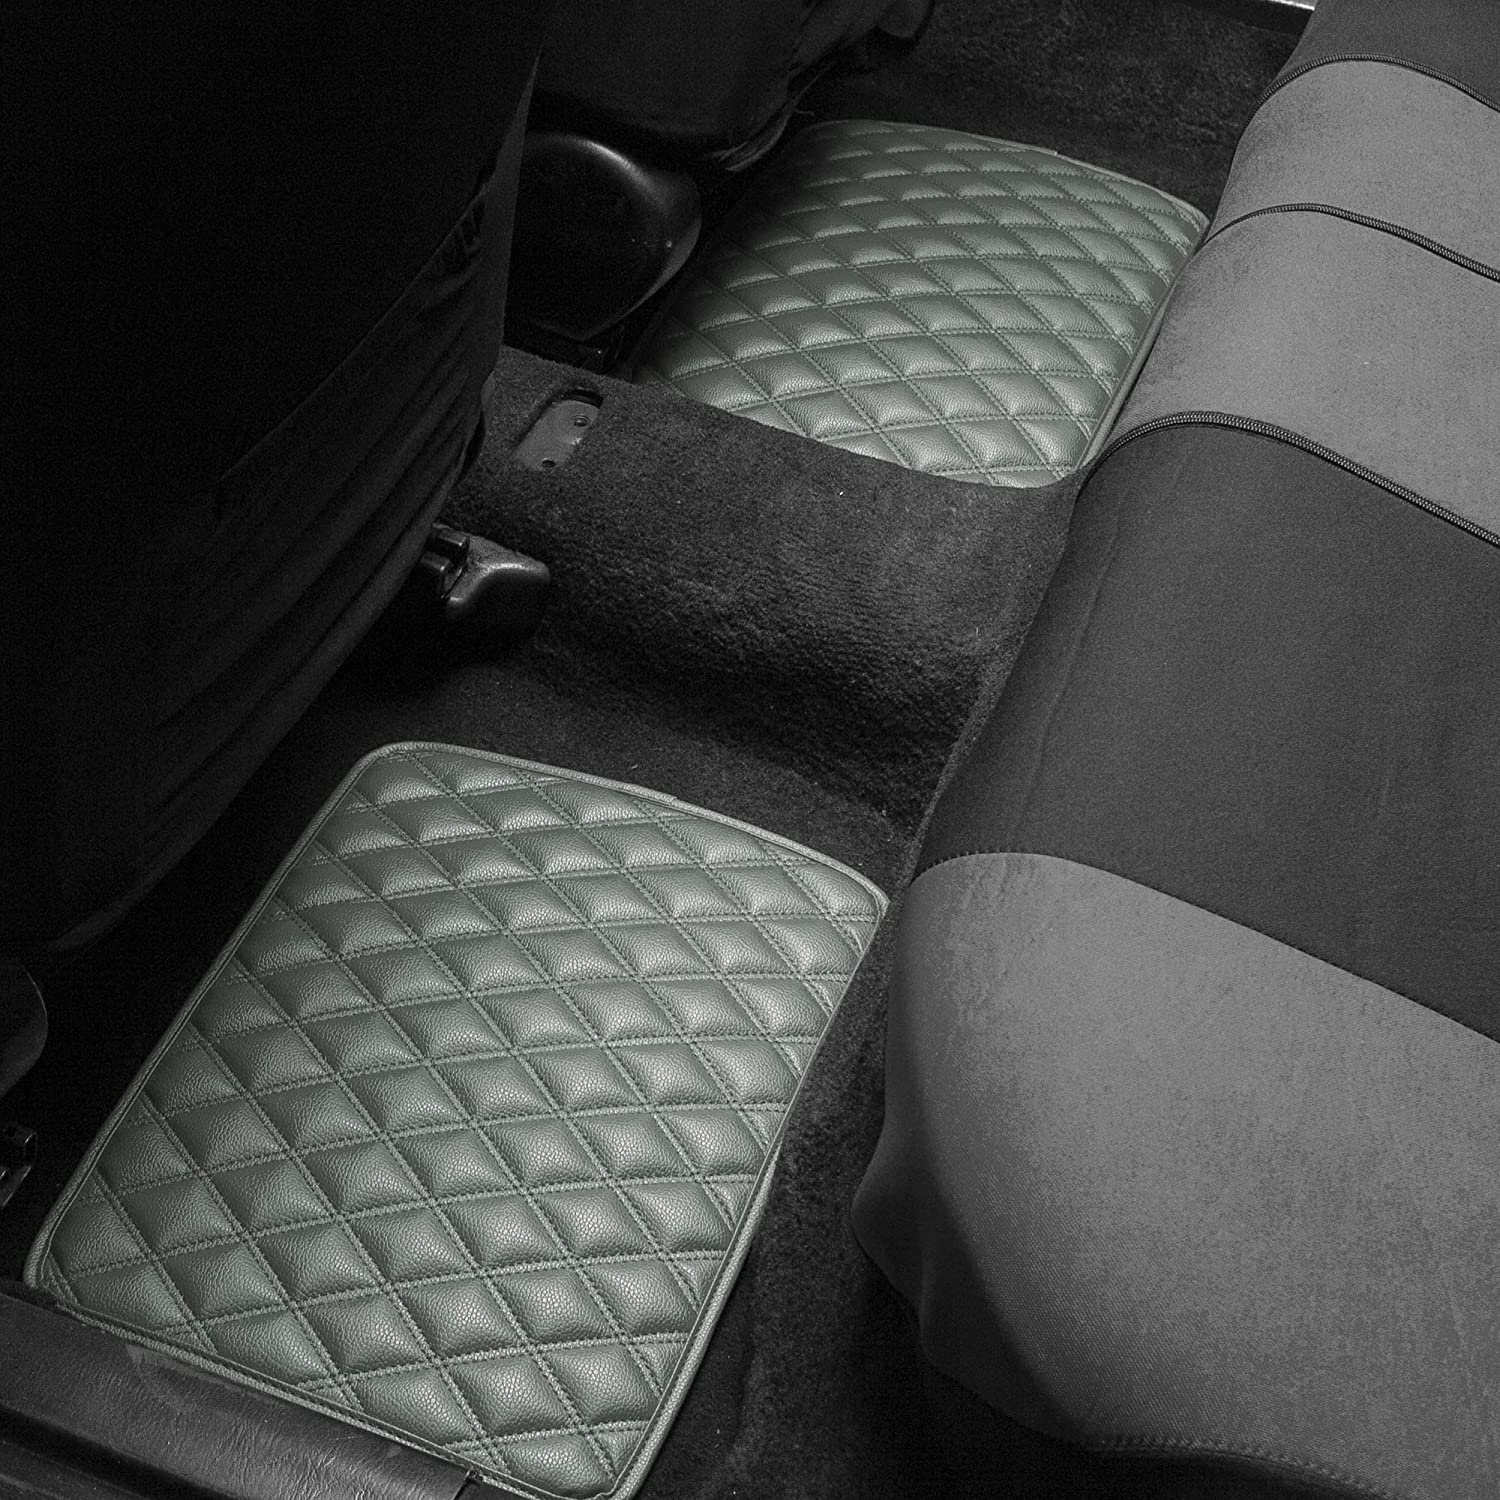 High Tech 3-D Anti-Skid//Slip Backing FH Group F12001BROWN Brown-Pattern Luxury Universal All-Season Heavy-Duty Faux Leather Car Floor Mats Stripe Design w